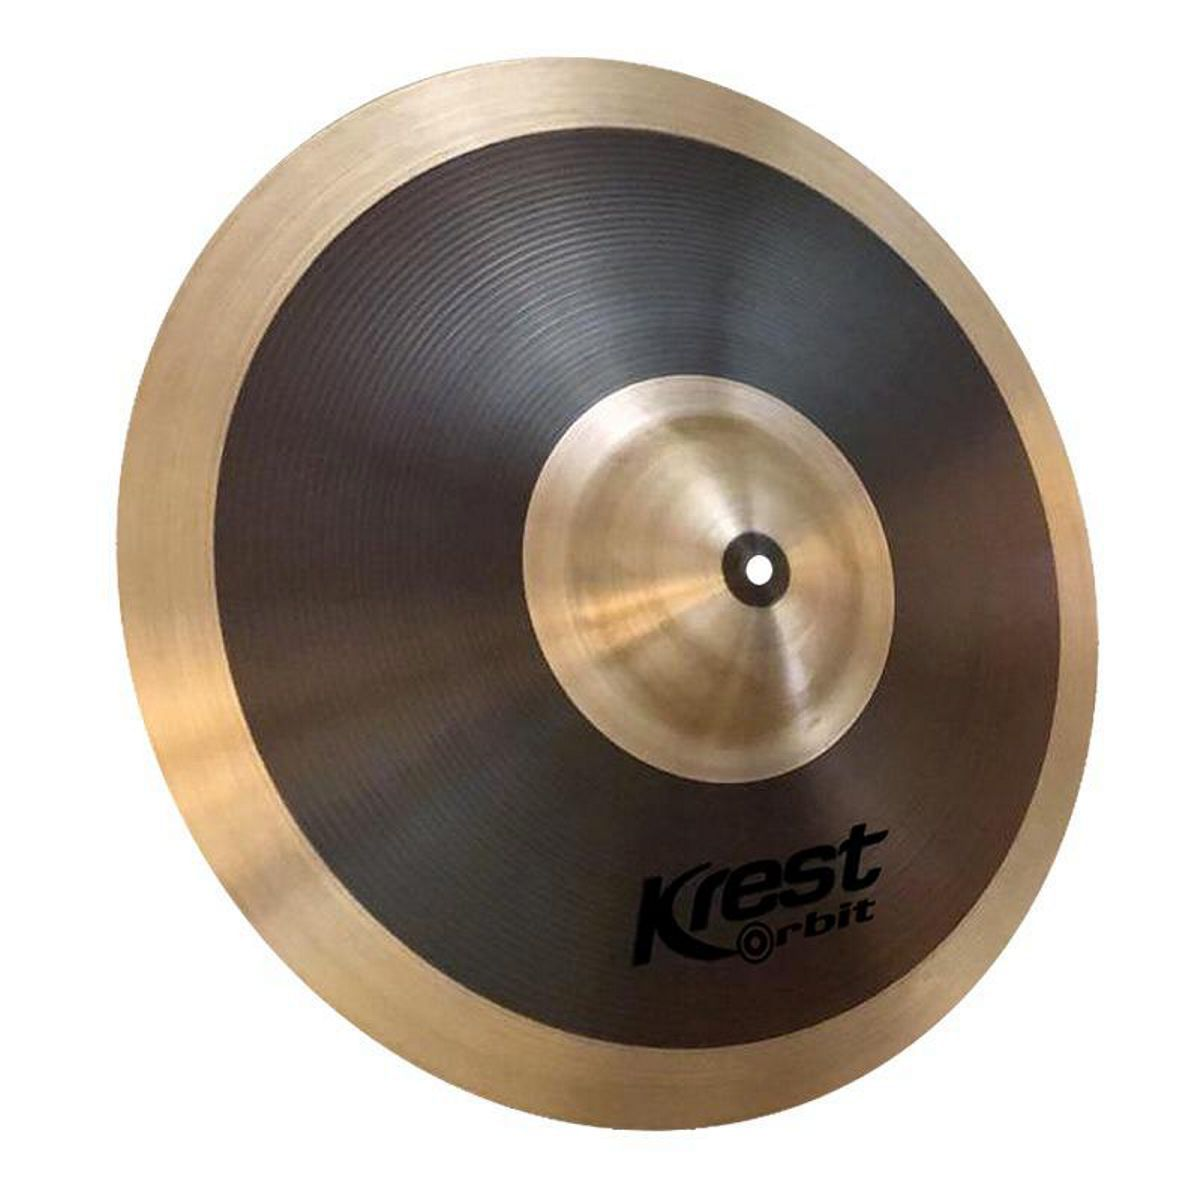 Prato de Ataque 16 ORBIT Medium CRASH KREST CYMBALS